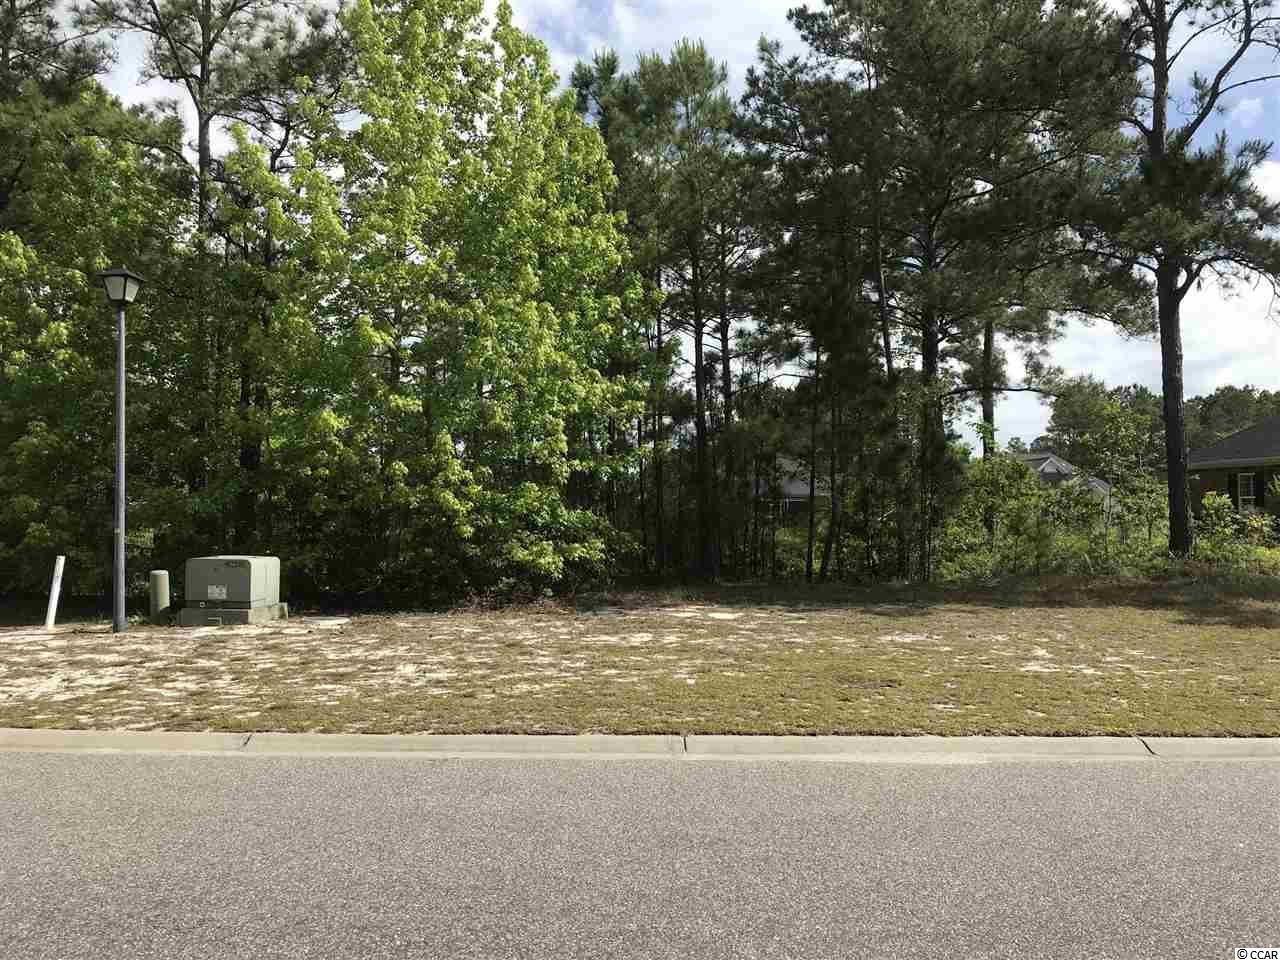 This amazing Carolina Forest residential lot located inside a gated community on a lakefront lot.  This lot is a prime location for your future dream home.   All residences have to have at least 1800 heated square feet, with a minimum two car garage, and exterior must be either brick, stucco, or stone.  The neighborhood is conveniently located just 2 miles from all the shopping of Carolina Forest and Hwy. 501.   Amenities includes the community pool,  a covered pavilion and playground. It is  just a short drive away from many golf courses in the area: The Legends, Burning Ridge, Man-of-War, Wild Wings, River Oaks and the famous World Tours.     Please call for more information.   Square footage is approximate and not guaranteed.  Buyer is responsibly for verification.